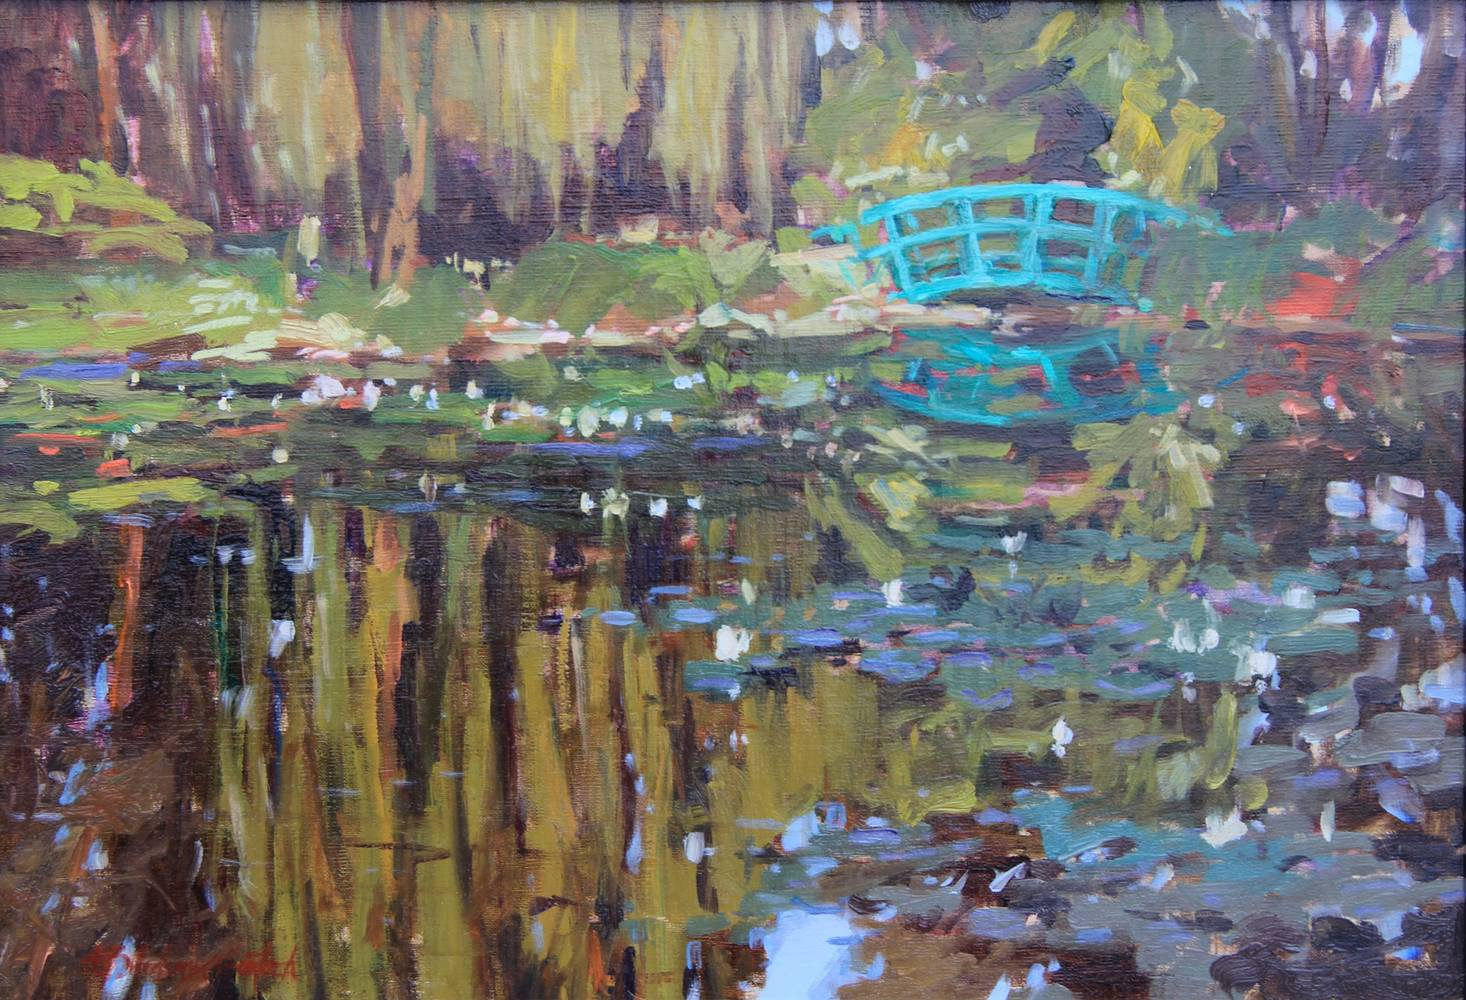 Painting Un Peu de Pont - a little bridge by Susette Gertsch